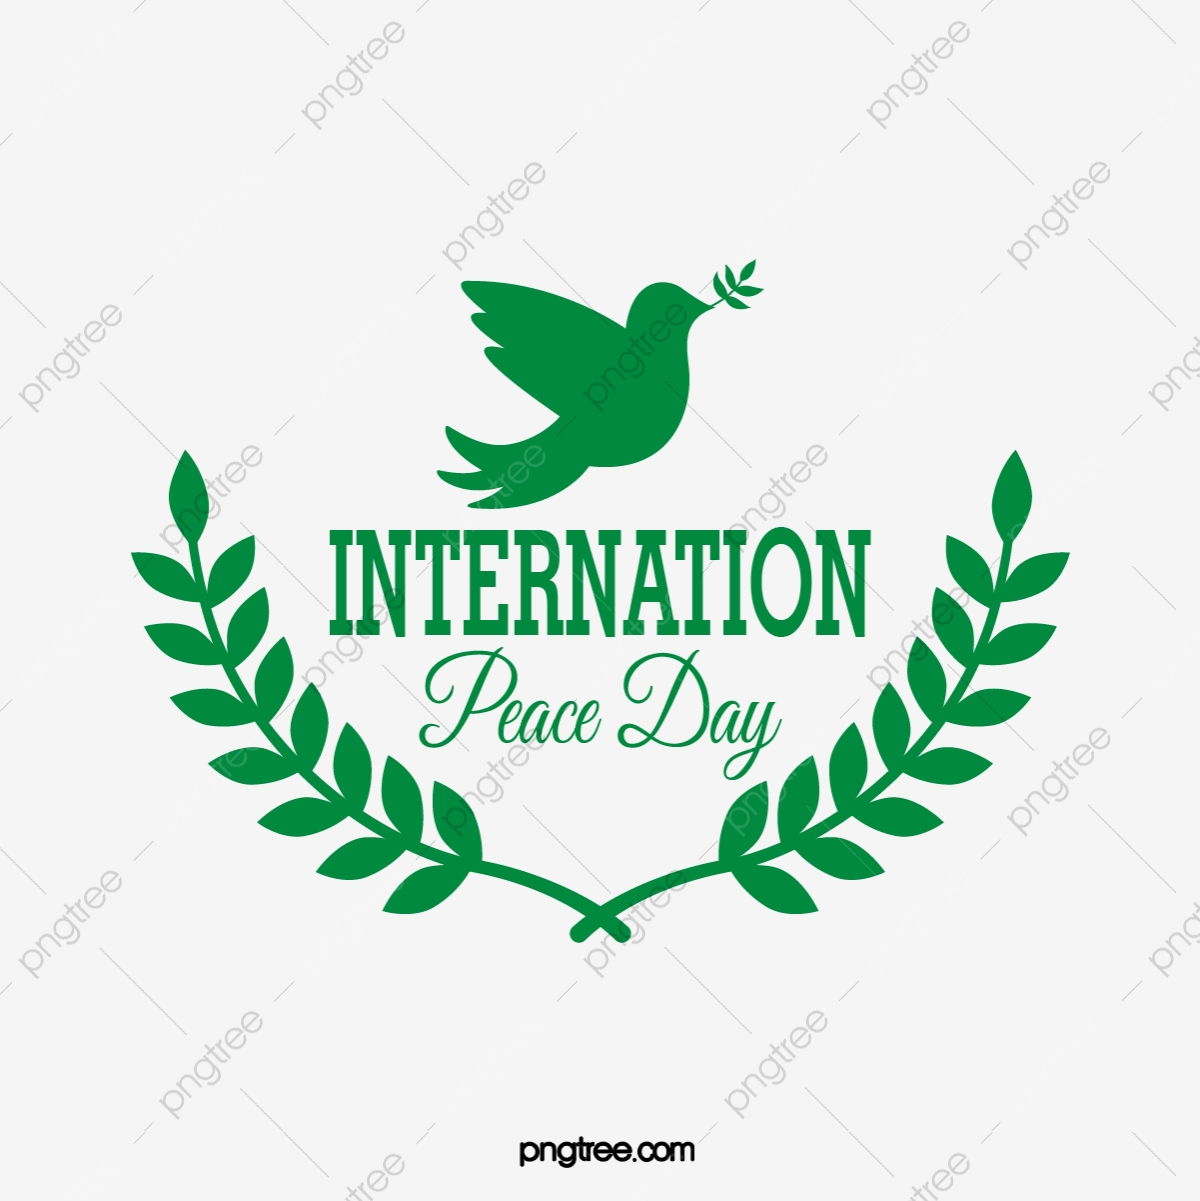 Green Creative Leaves International Peace Day Creative Badge Logo Green Creative Leaf Png And Vector With Transparent Background For Free Download